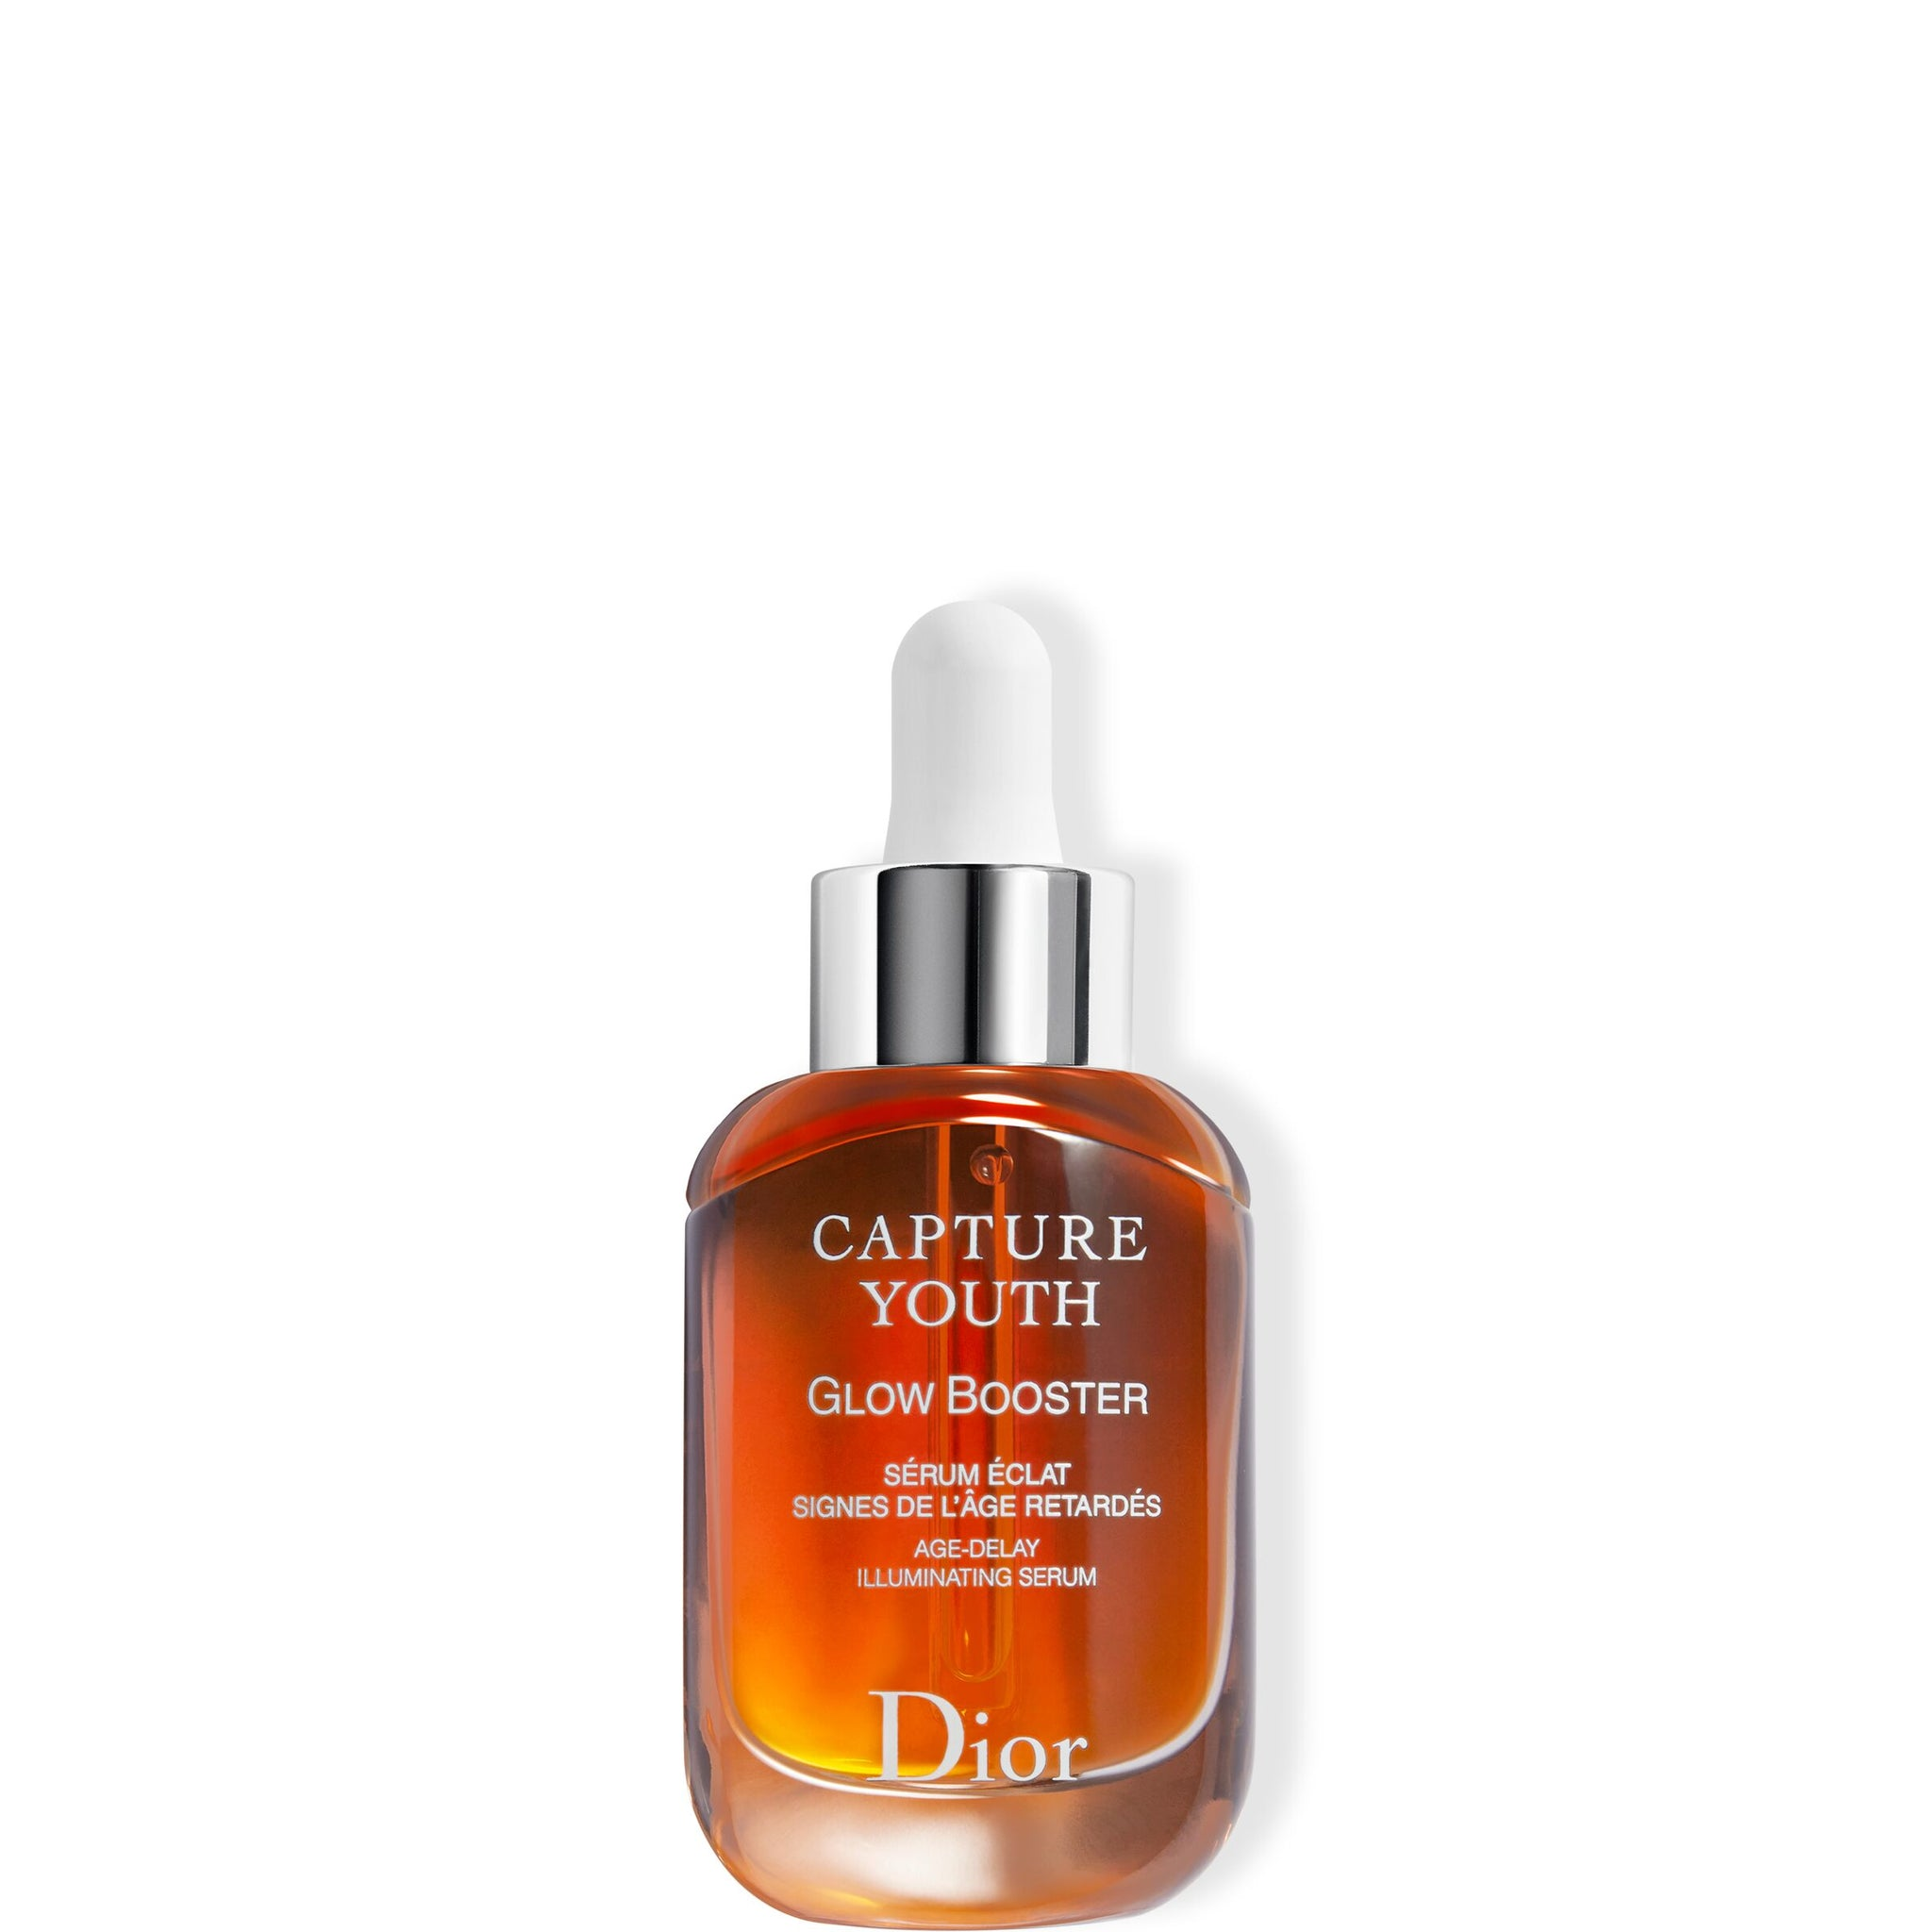 CAPTURE YOUTH | Glow booster age-delay illuminating serum